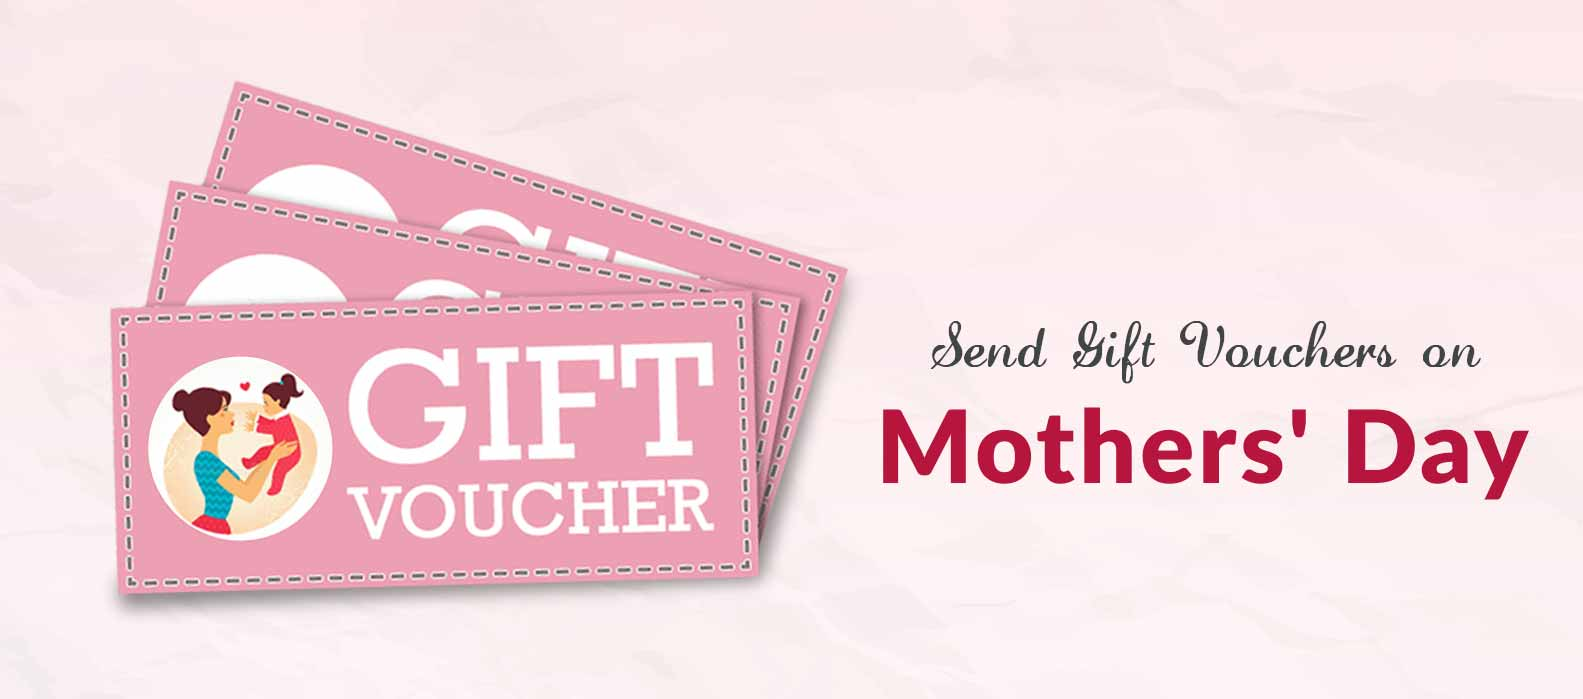 mothers day inspired vouchers - 1583×699